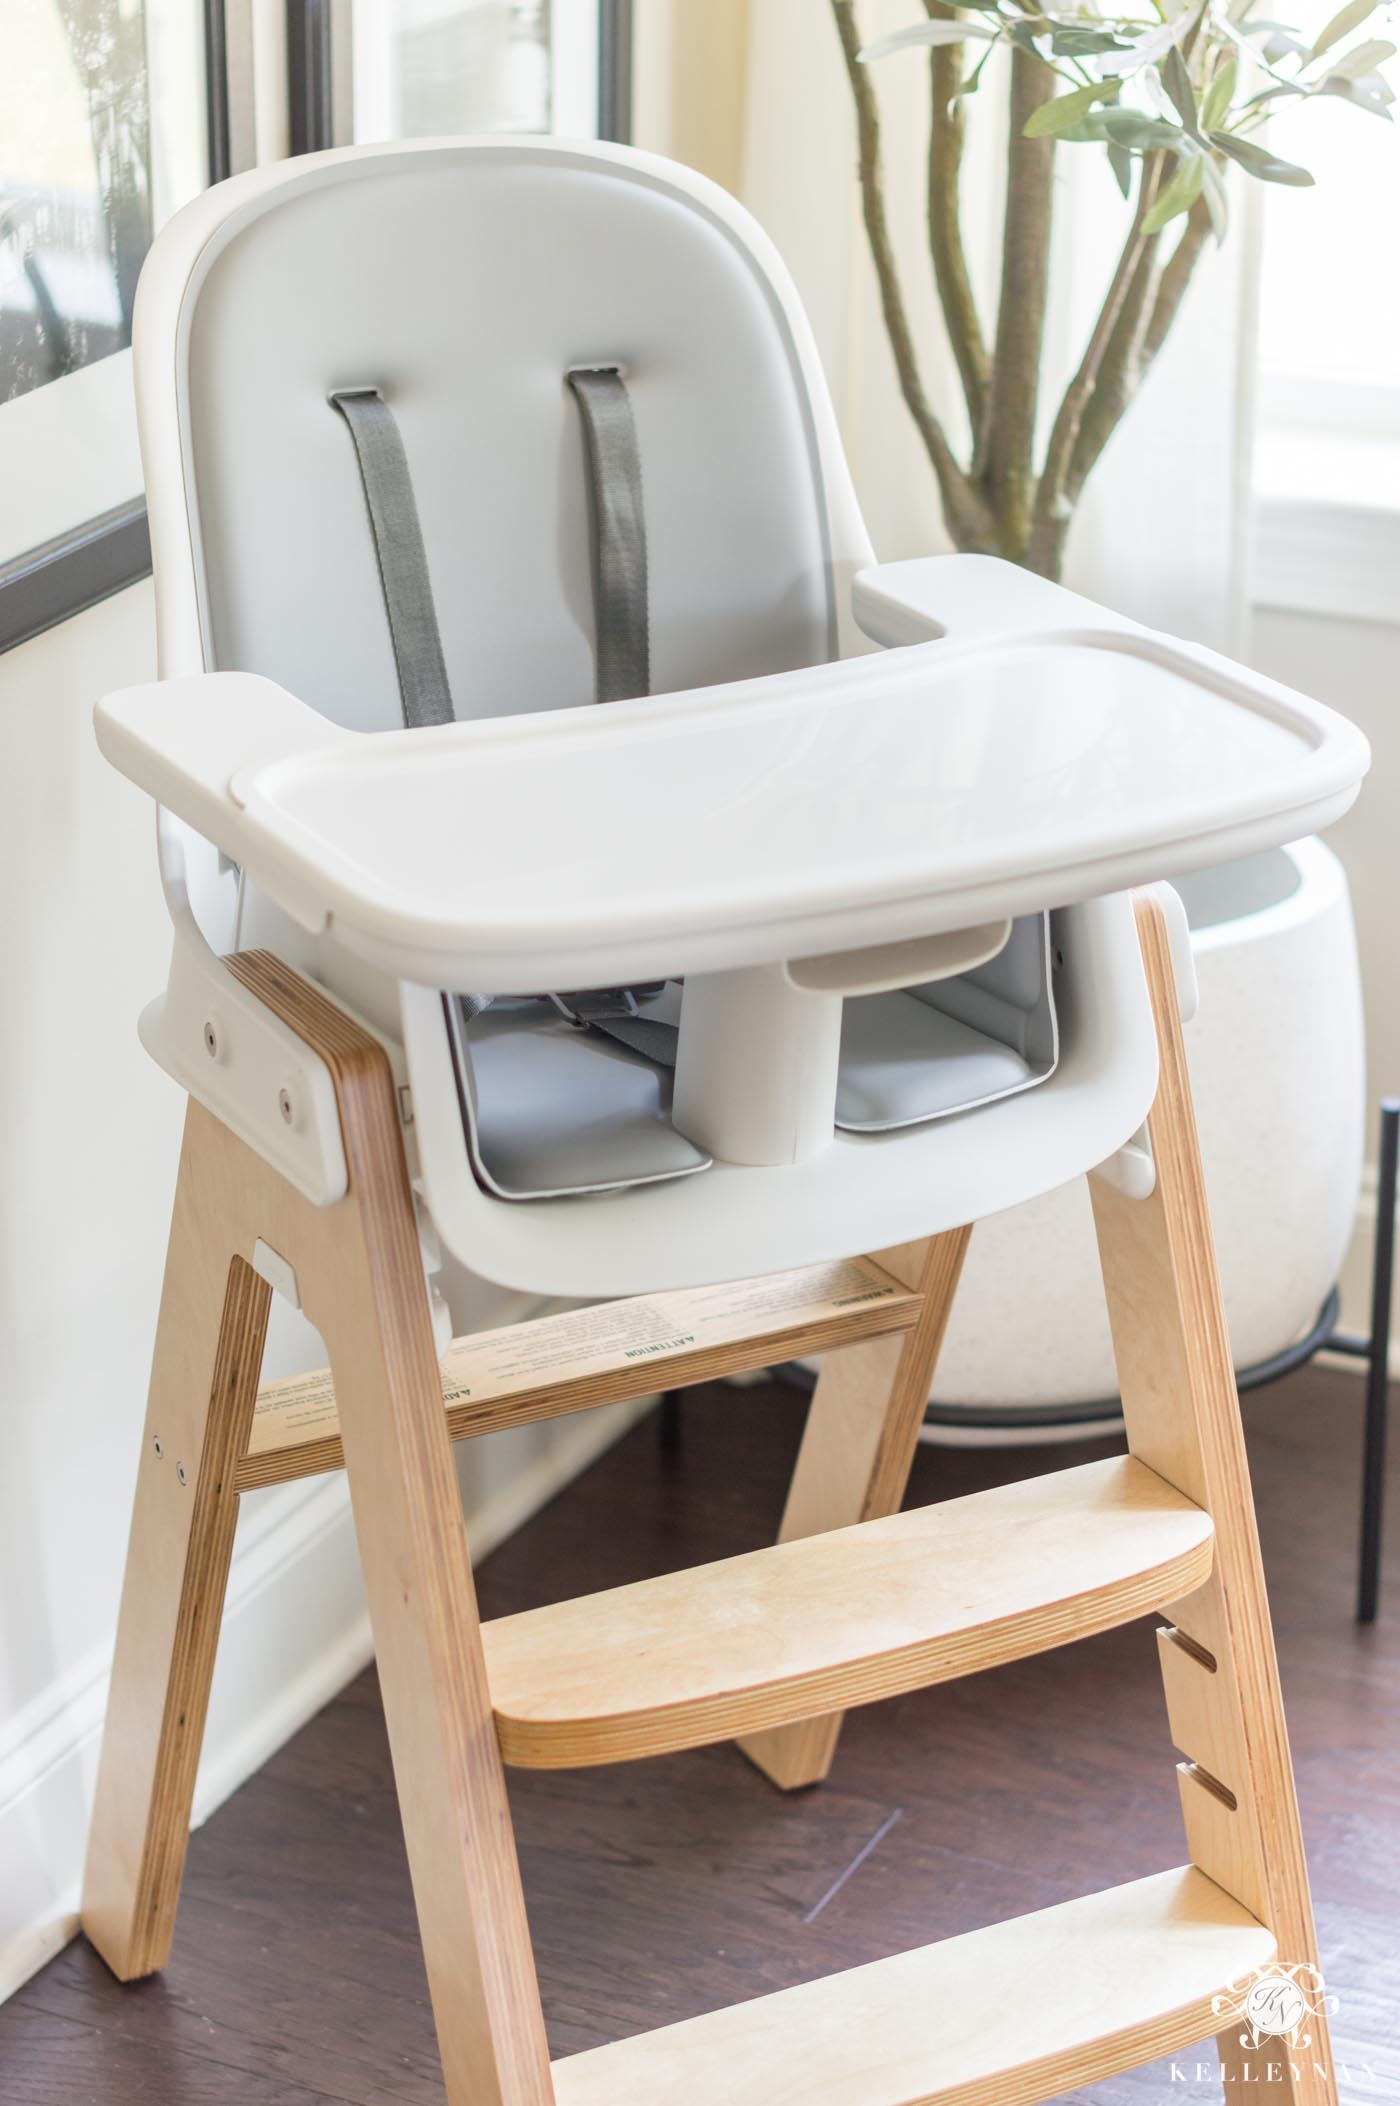 Prettiest Baby Gear for the Home